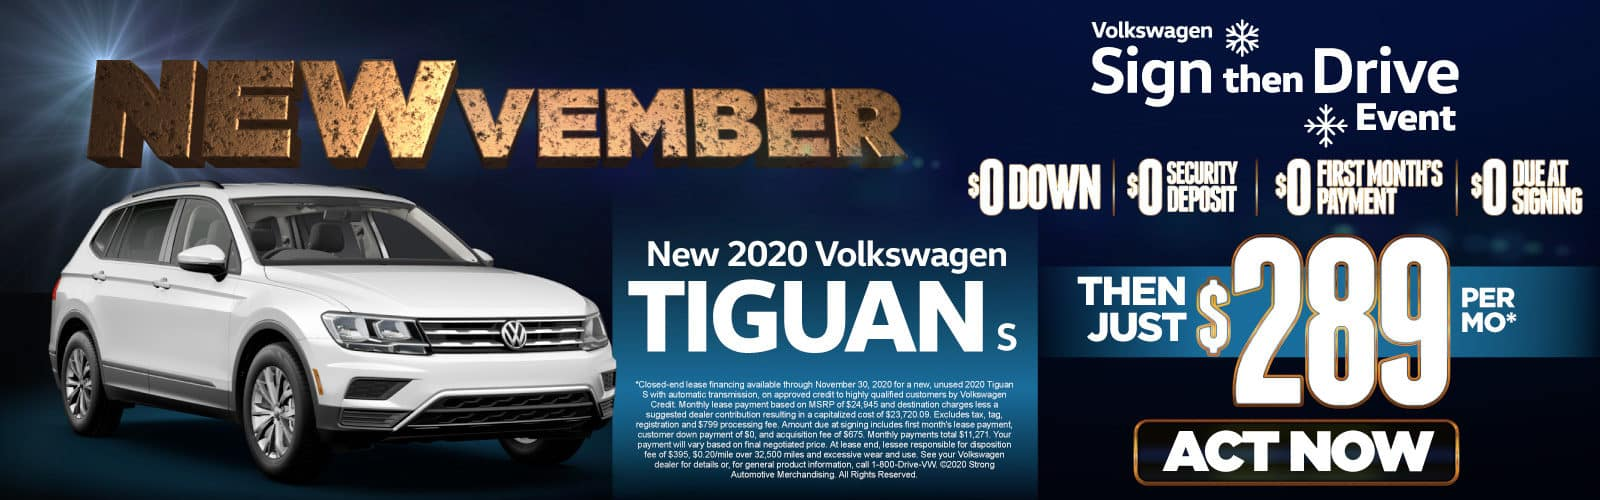 New 2020 VW Tiguan - Only $289 a month - Act Now